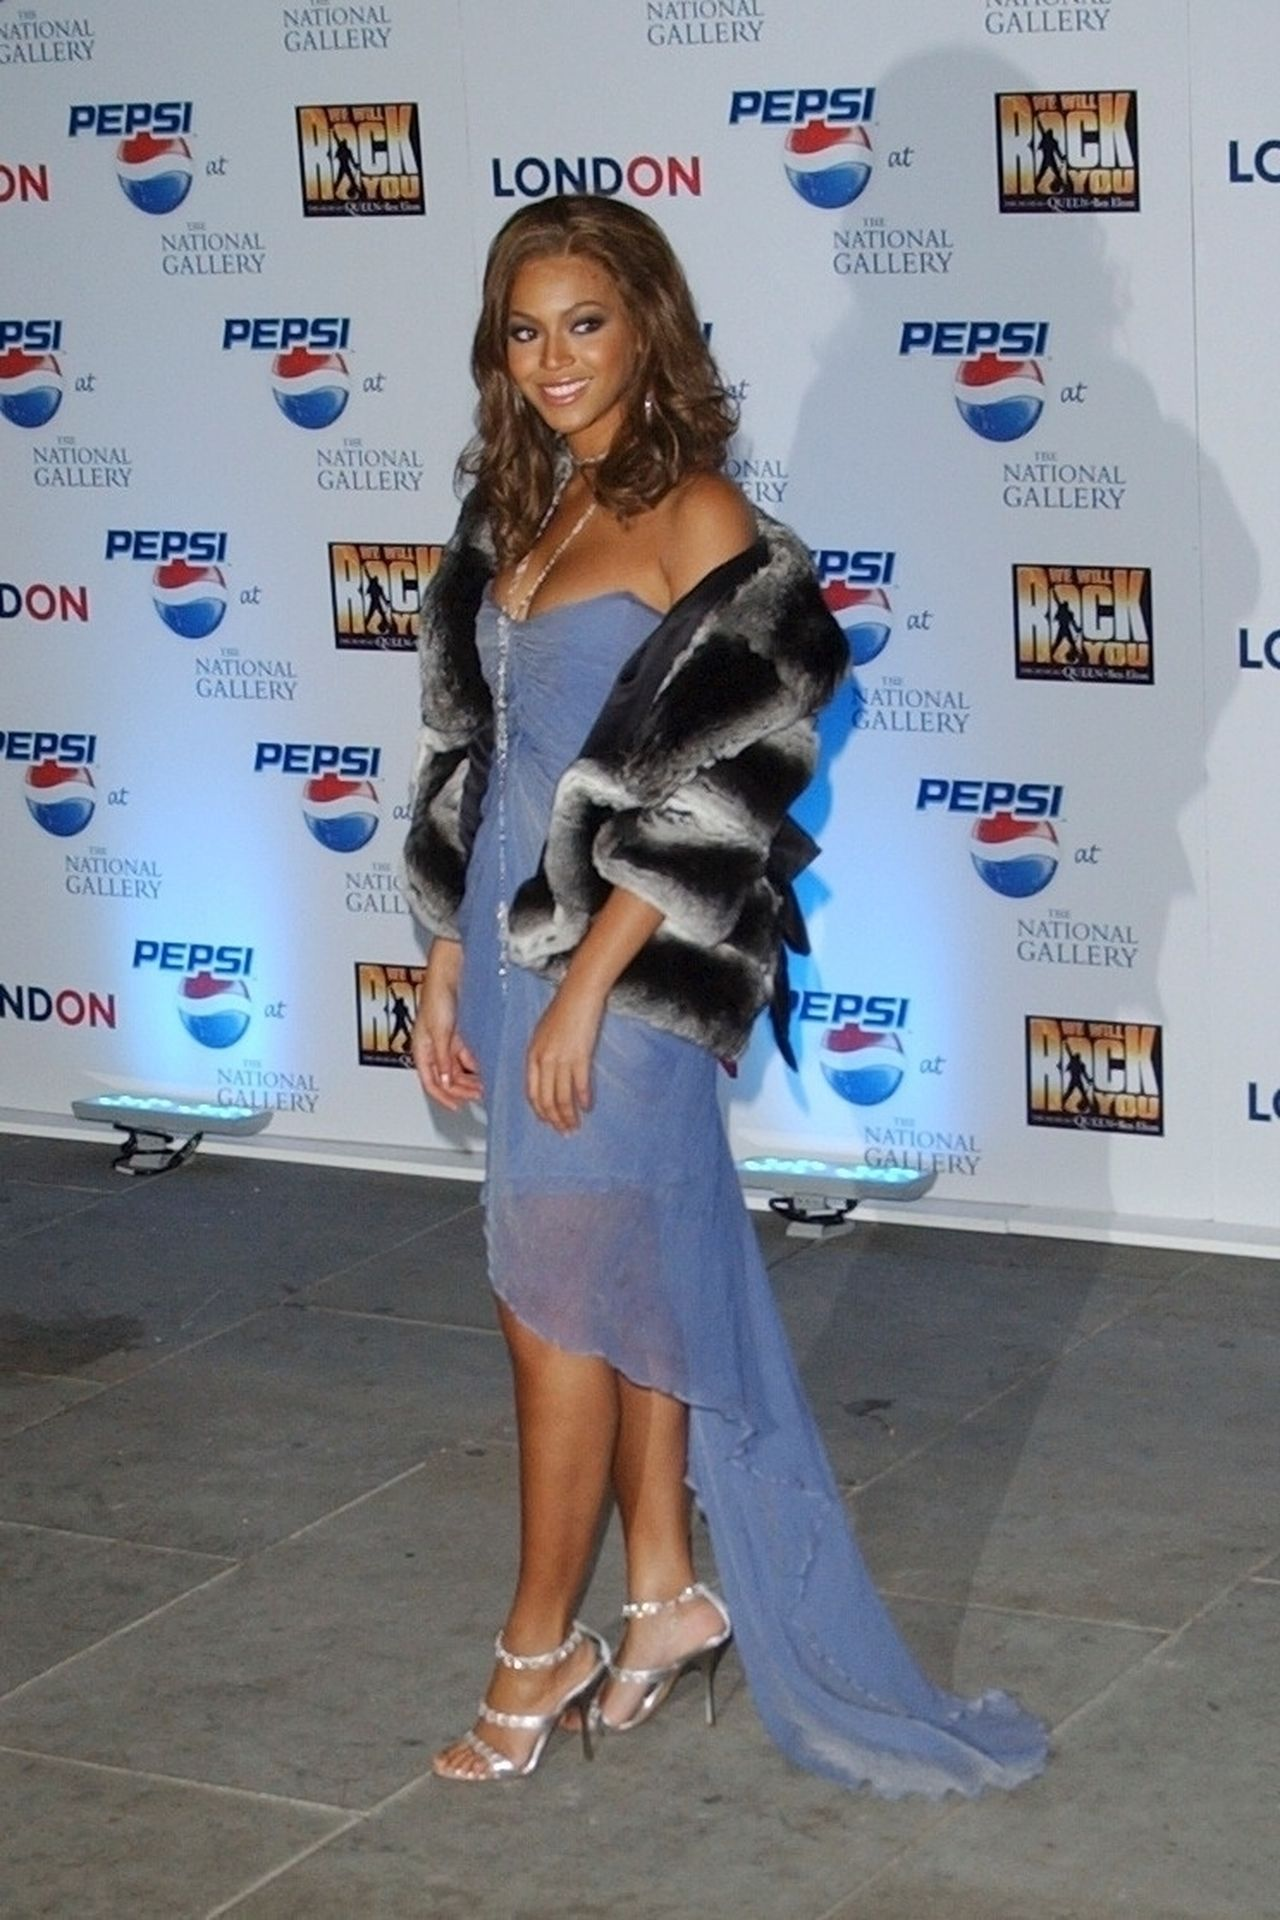 Beyonce Displays Her Cleavage At Pepsi Event In London 0005